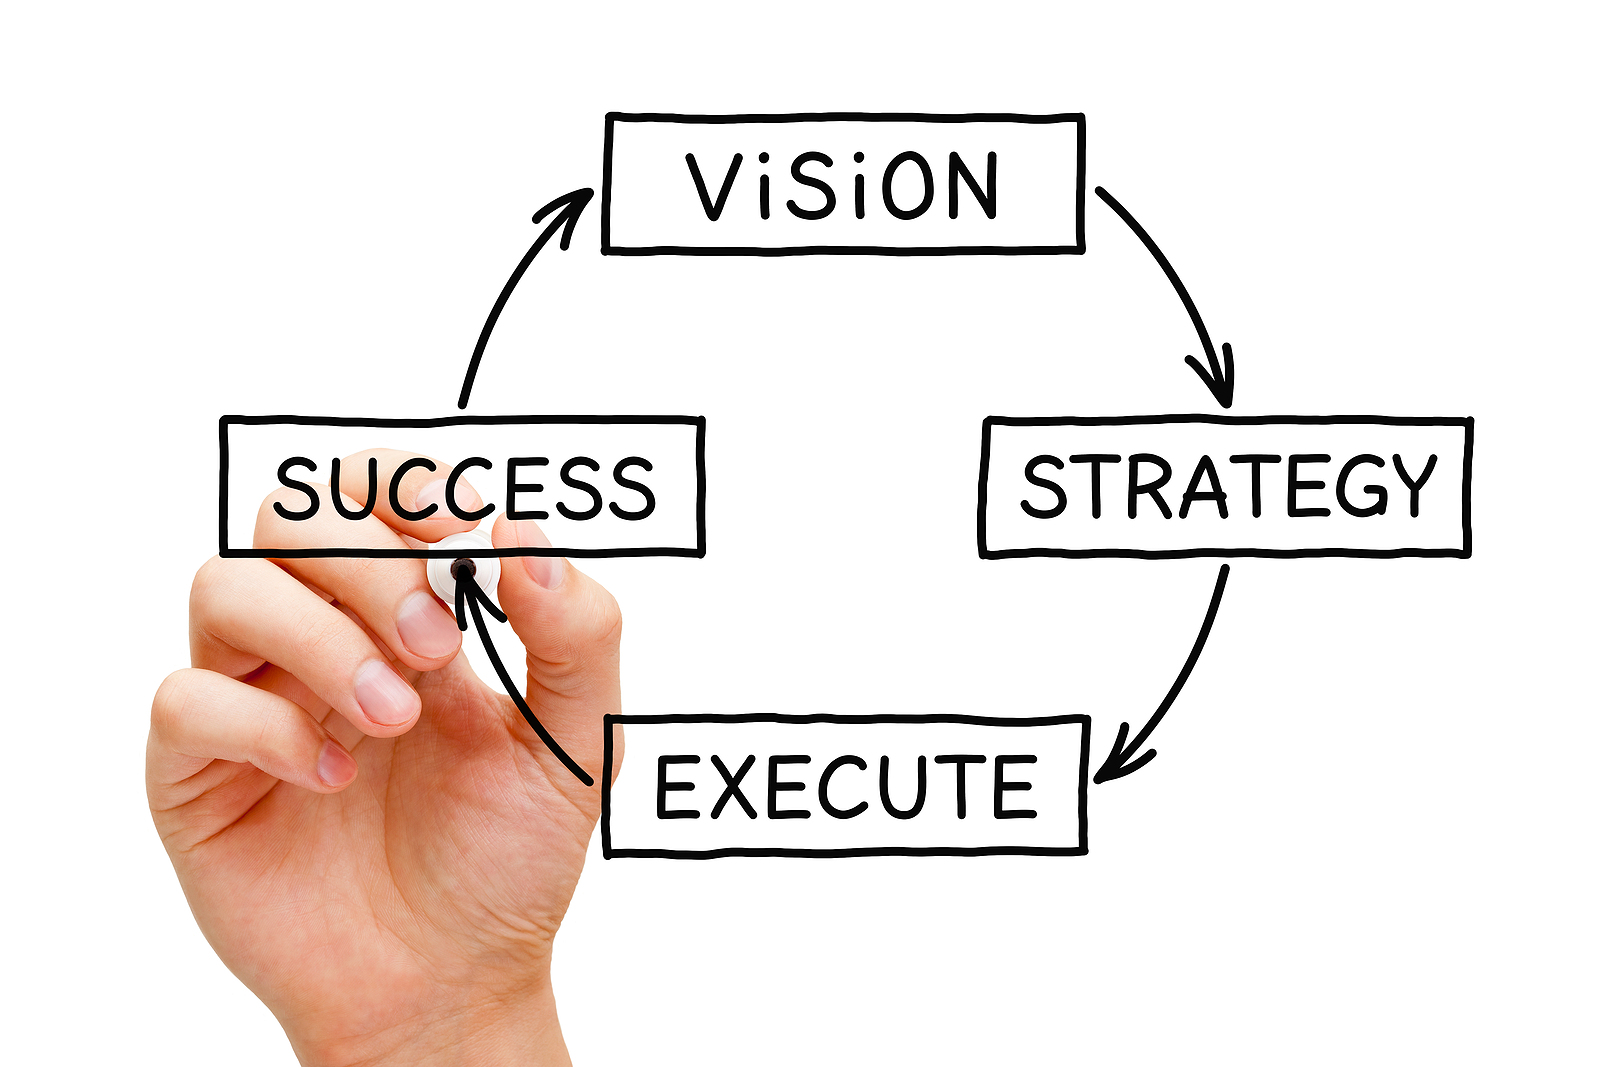 Hand drawing a business concept about the process from vision through strategy and execution to success.